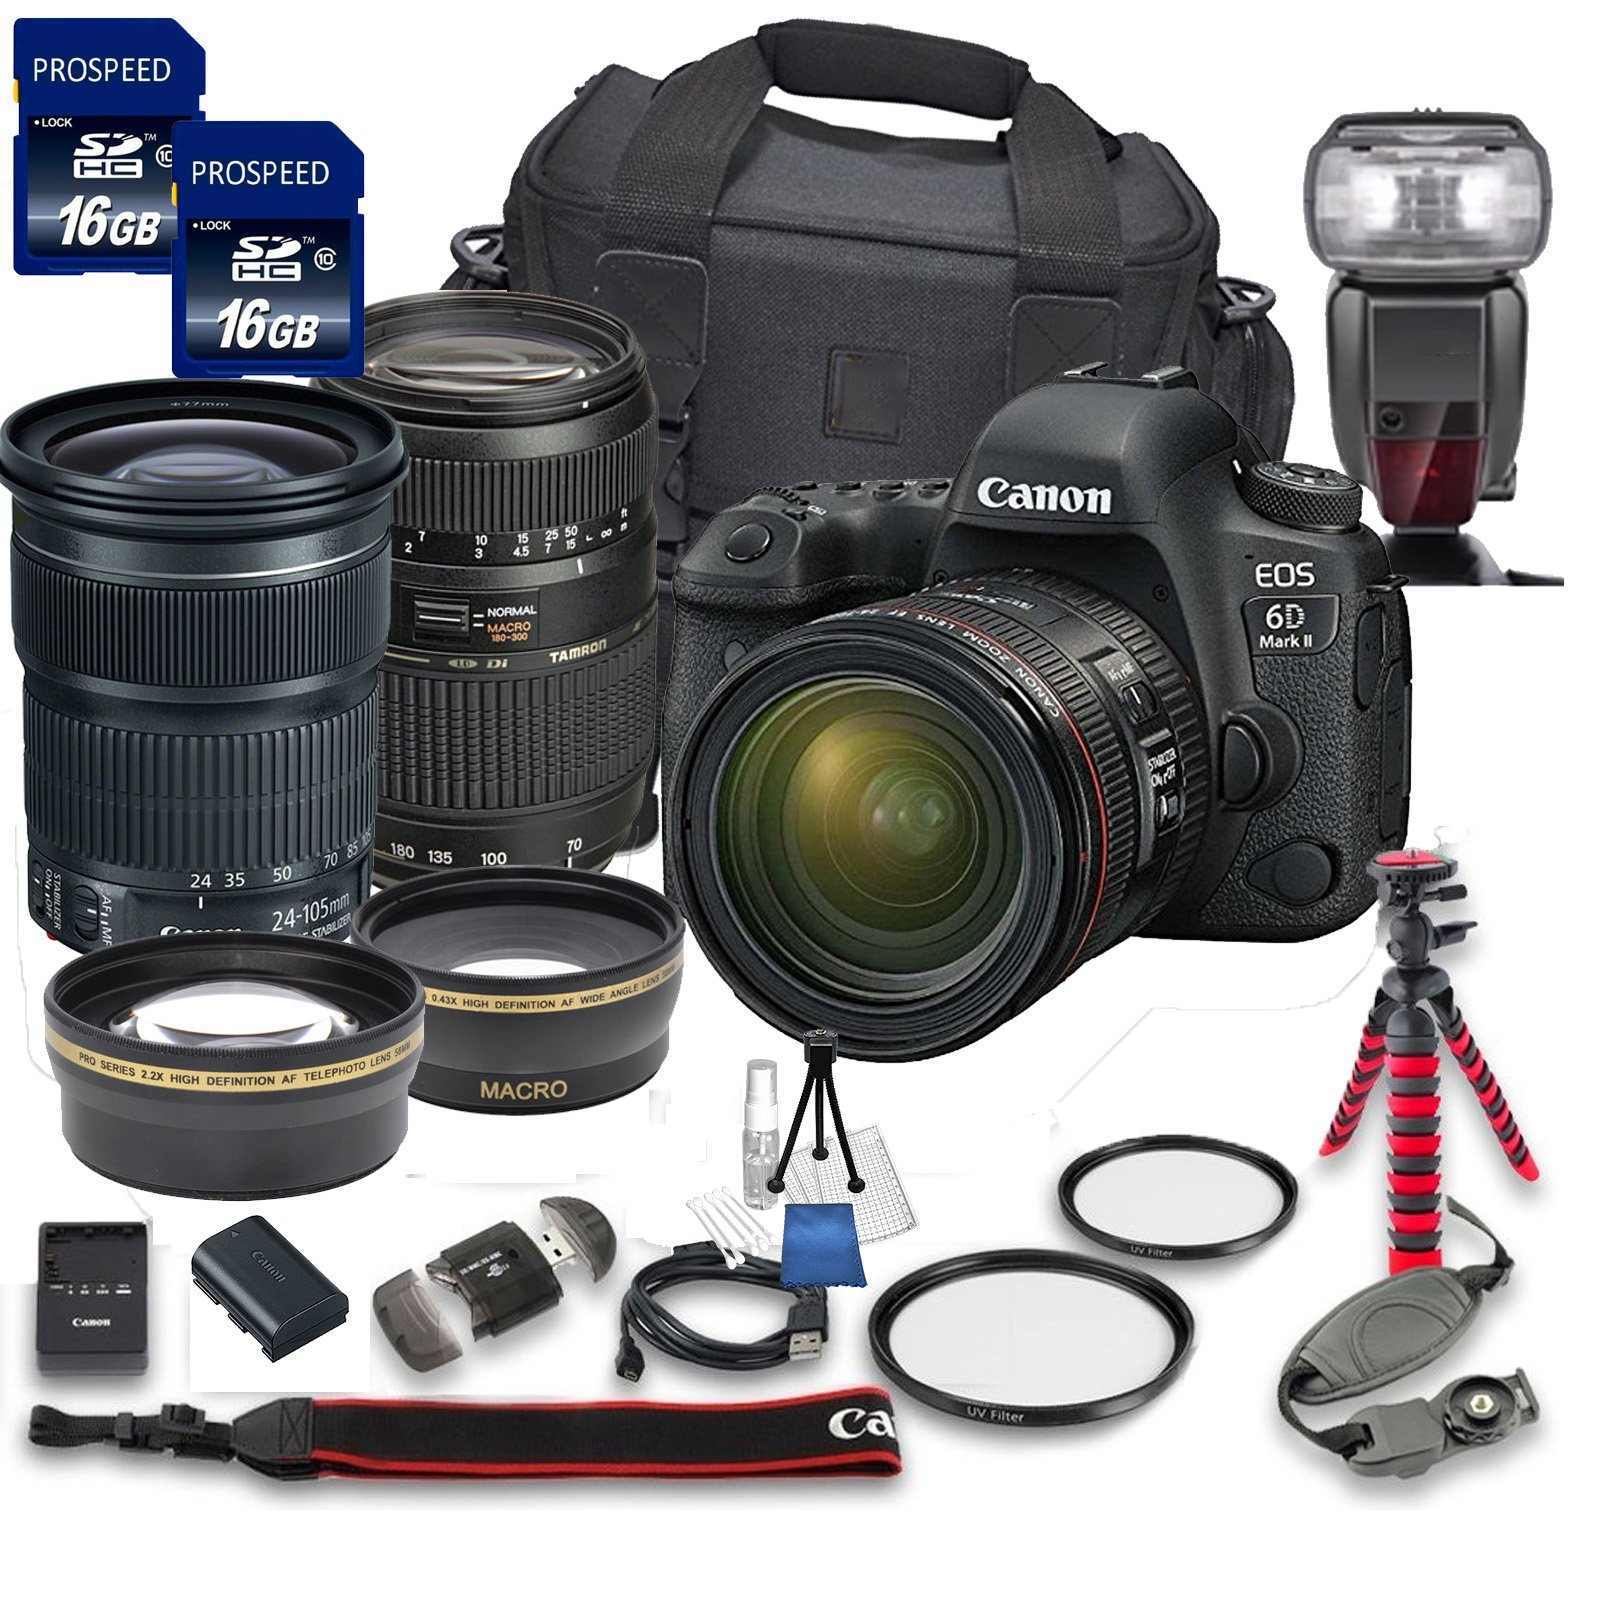 Canon EOS 6D MARK II DSLR Camera Bundle w/ Canon EF 24-105mm f/3.5-5.6 IS STM Lens + Tamron 70-300mm f/4-5.6 Telephoto Lens + 2pc PROSPEED 16GB Memory Cards + Premium Accessory Bundle Kit (18 Items) by Canon